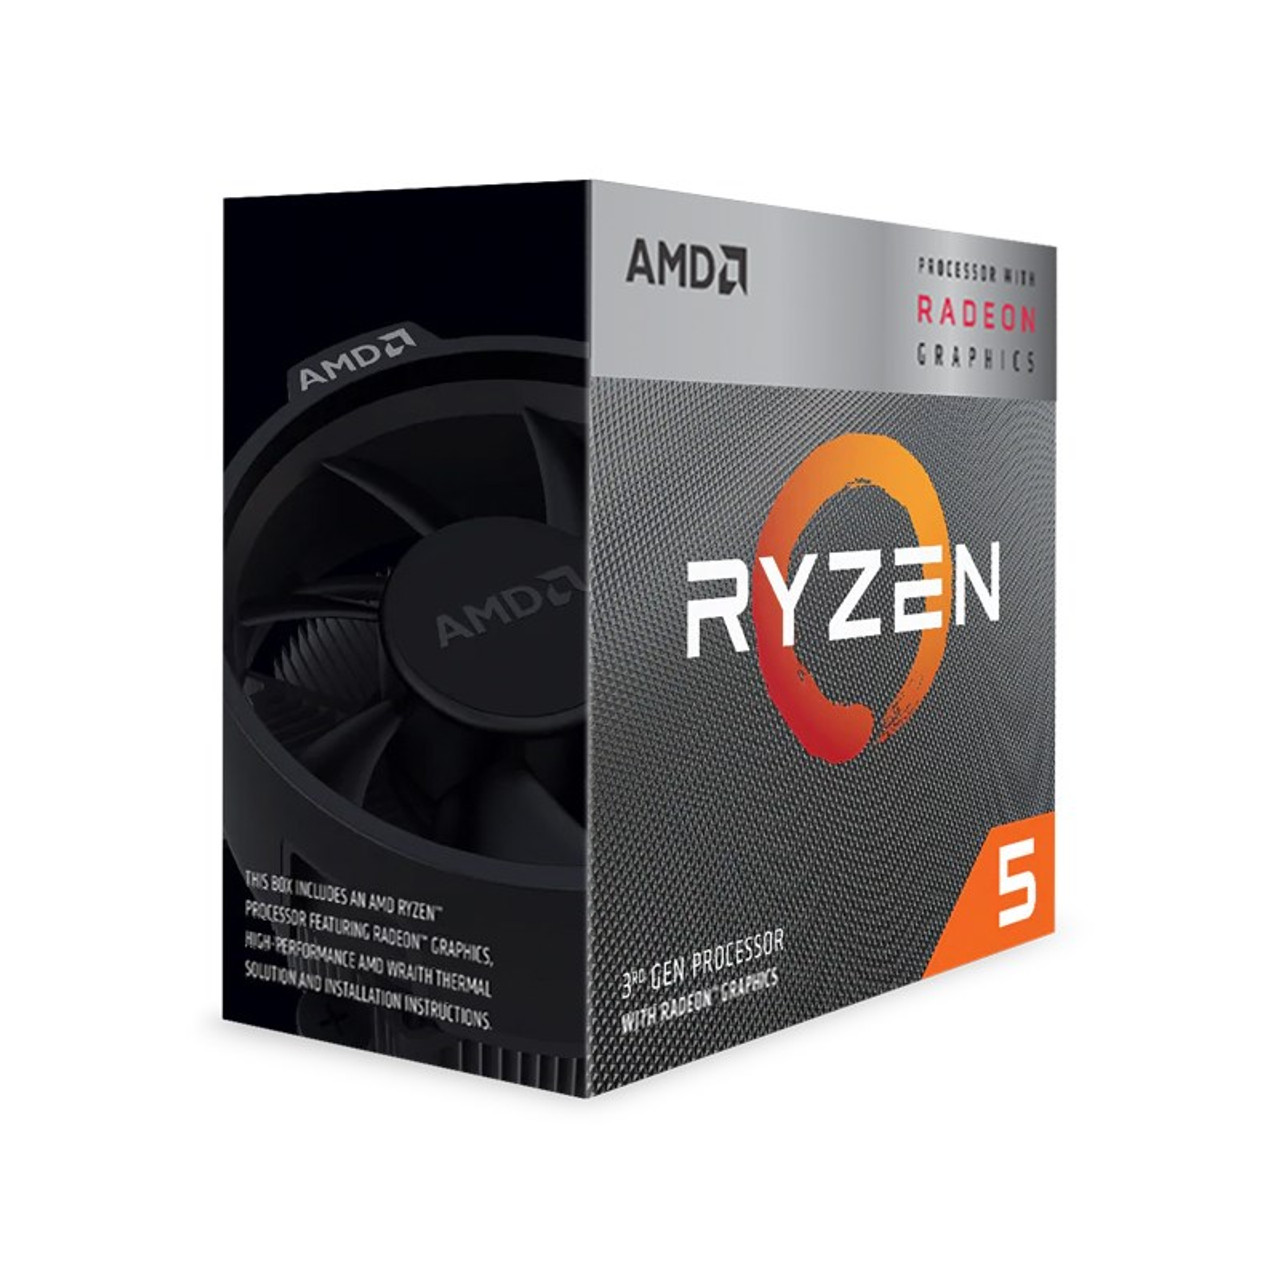 AMD Ryzen 5 3400G APU with Vega 11 Graphics